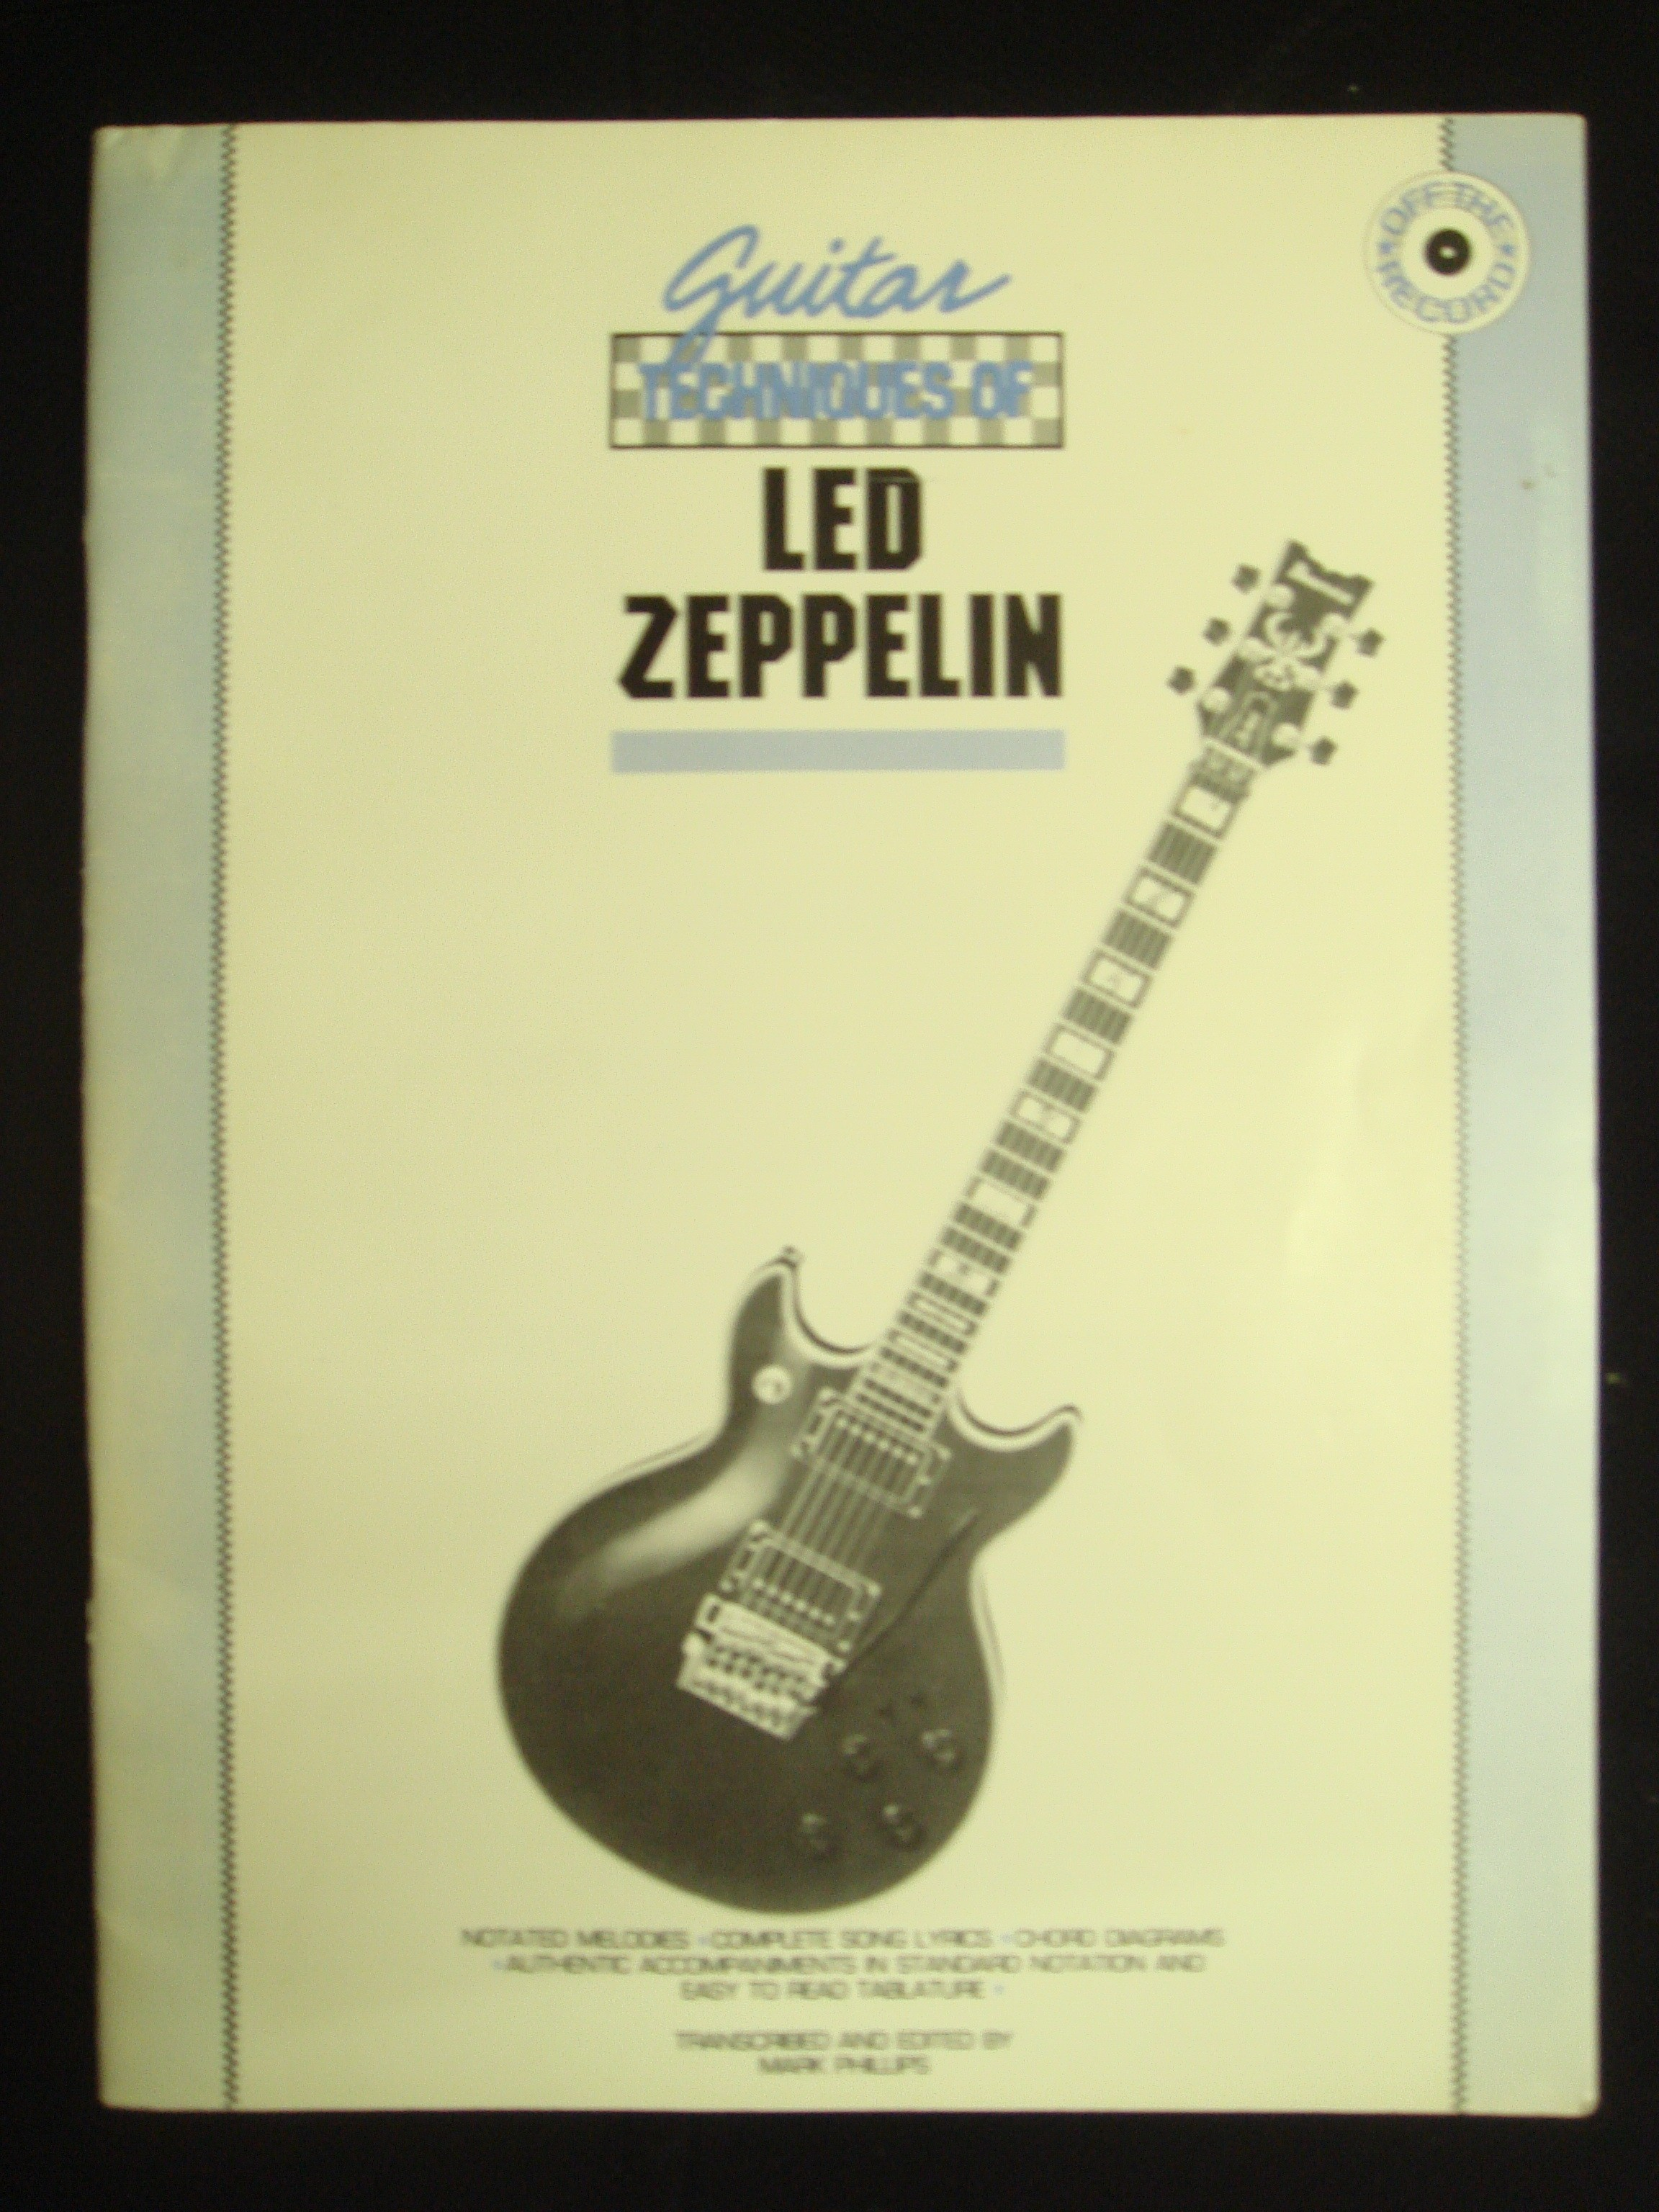 Guitar Techniques Of Led Zeppelin Book Off The Record Notes Tab Phillips S147